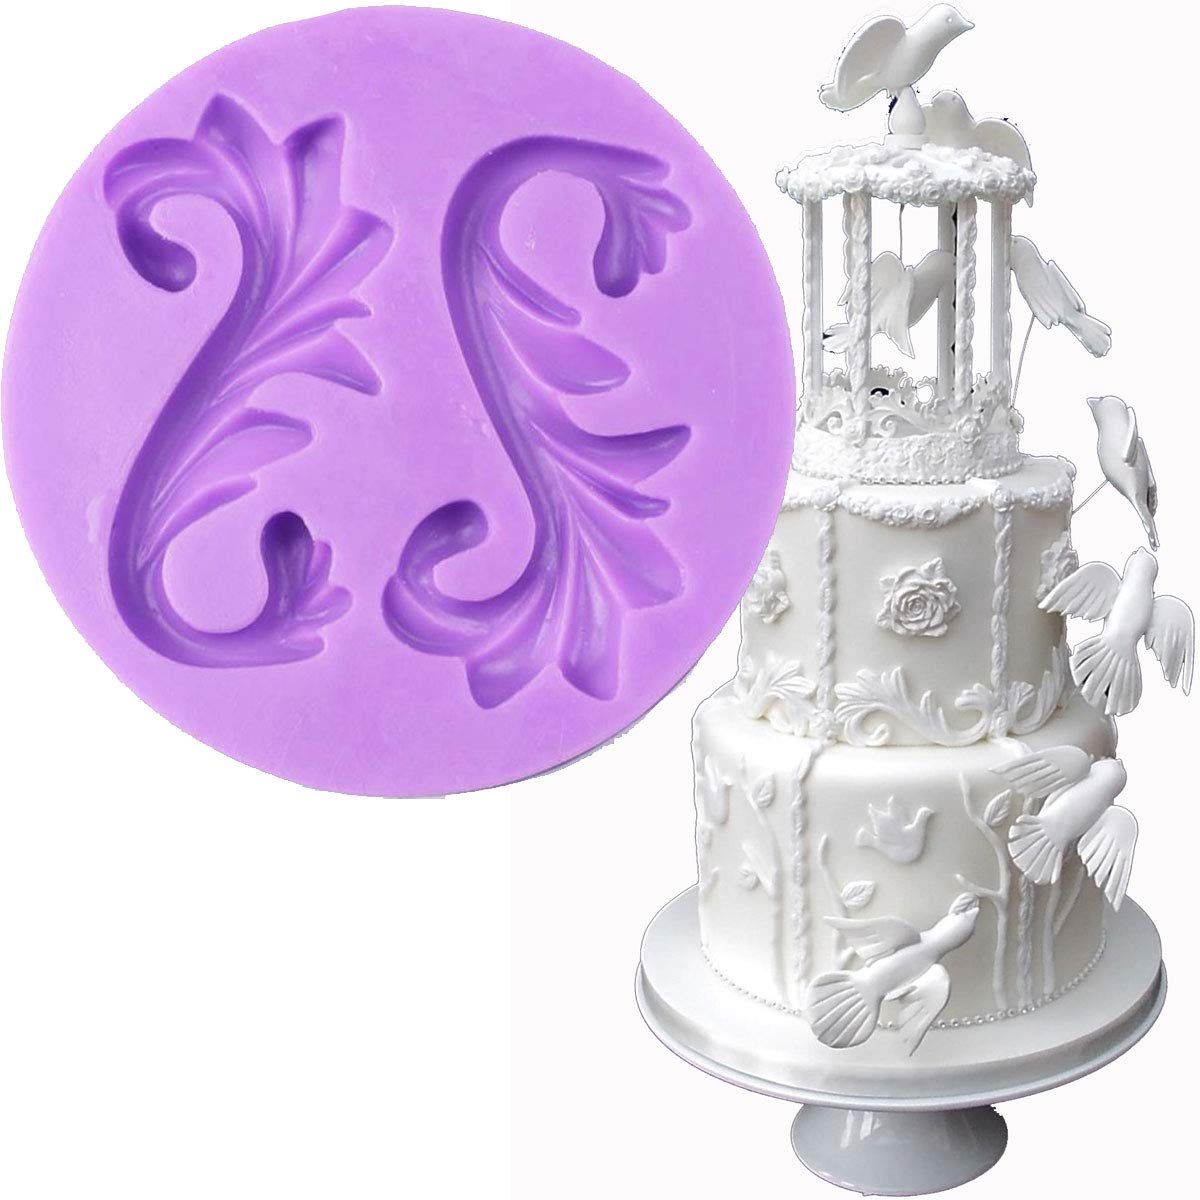 Anyana large big Vintage European Relief Baroque Scroll wedding mould cake Fondant gum paste silicone mold for Sugar paste baking cupcake decorating topper decoration sugarcraft décor